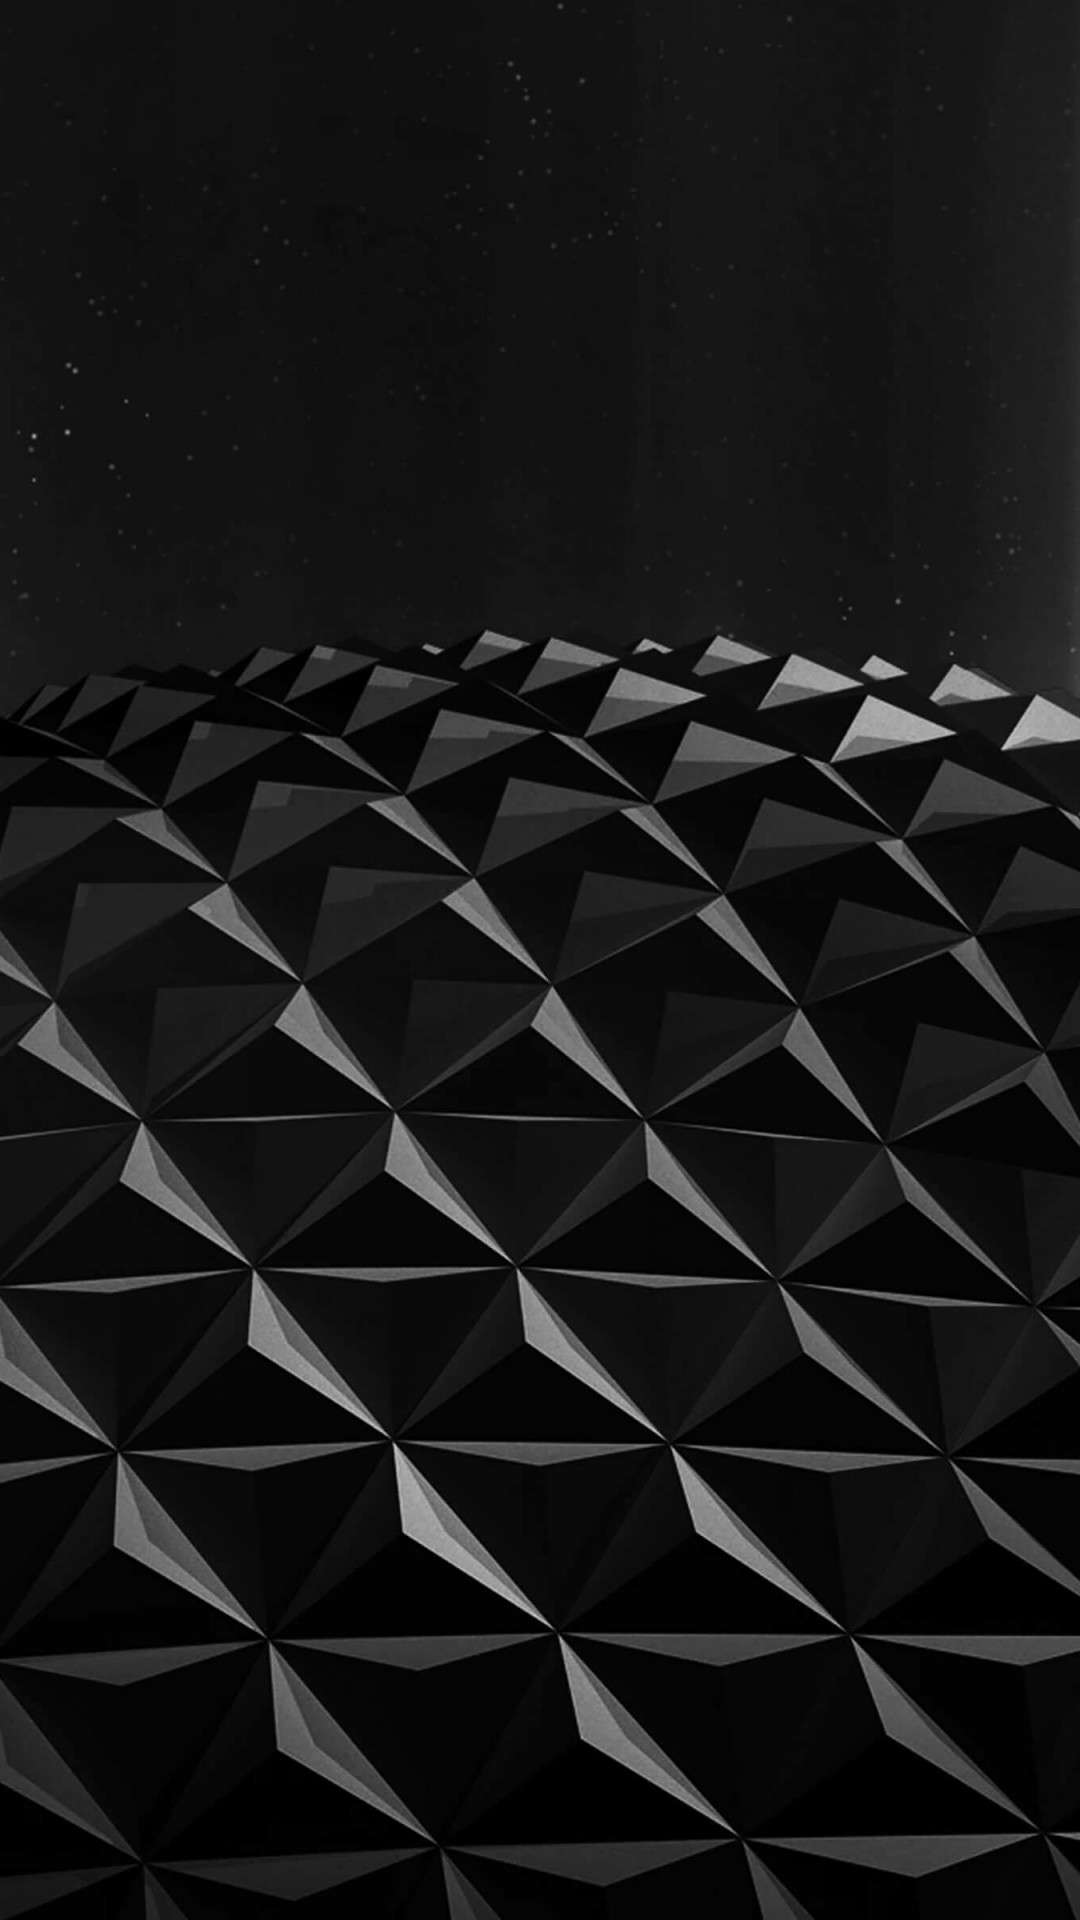 Black Polygon Planet Wallpaper for SAMSUNG Galaxy S4